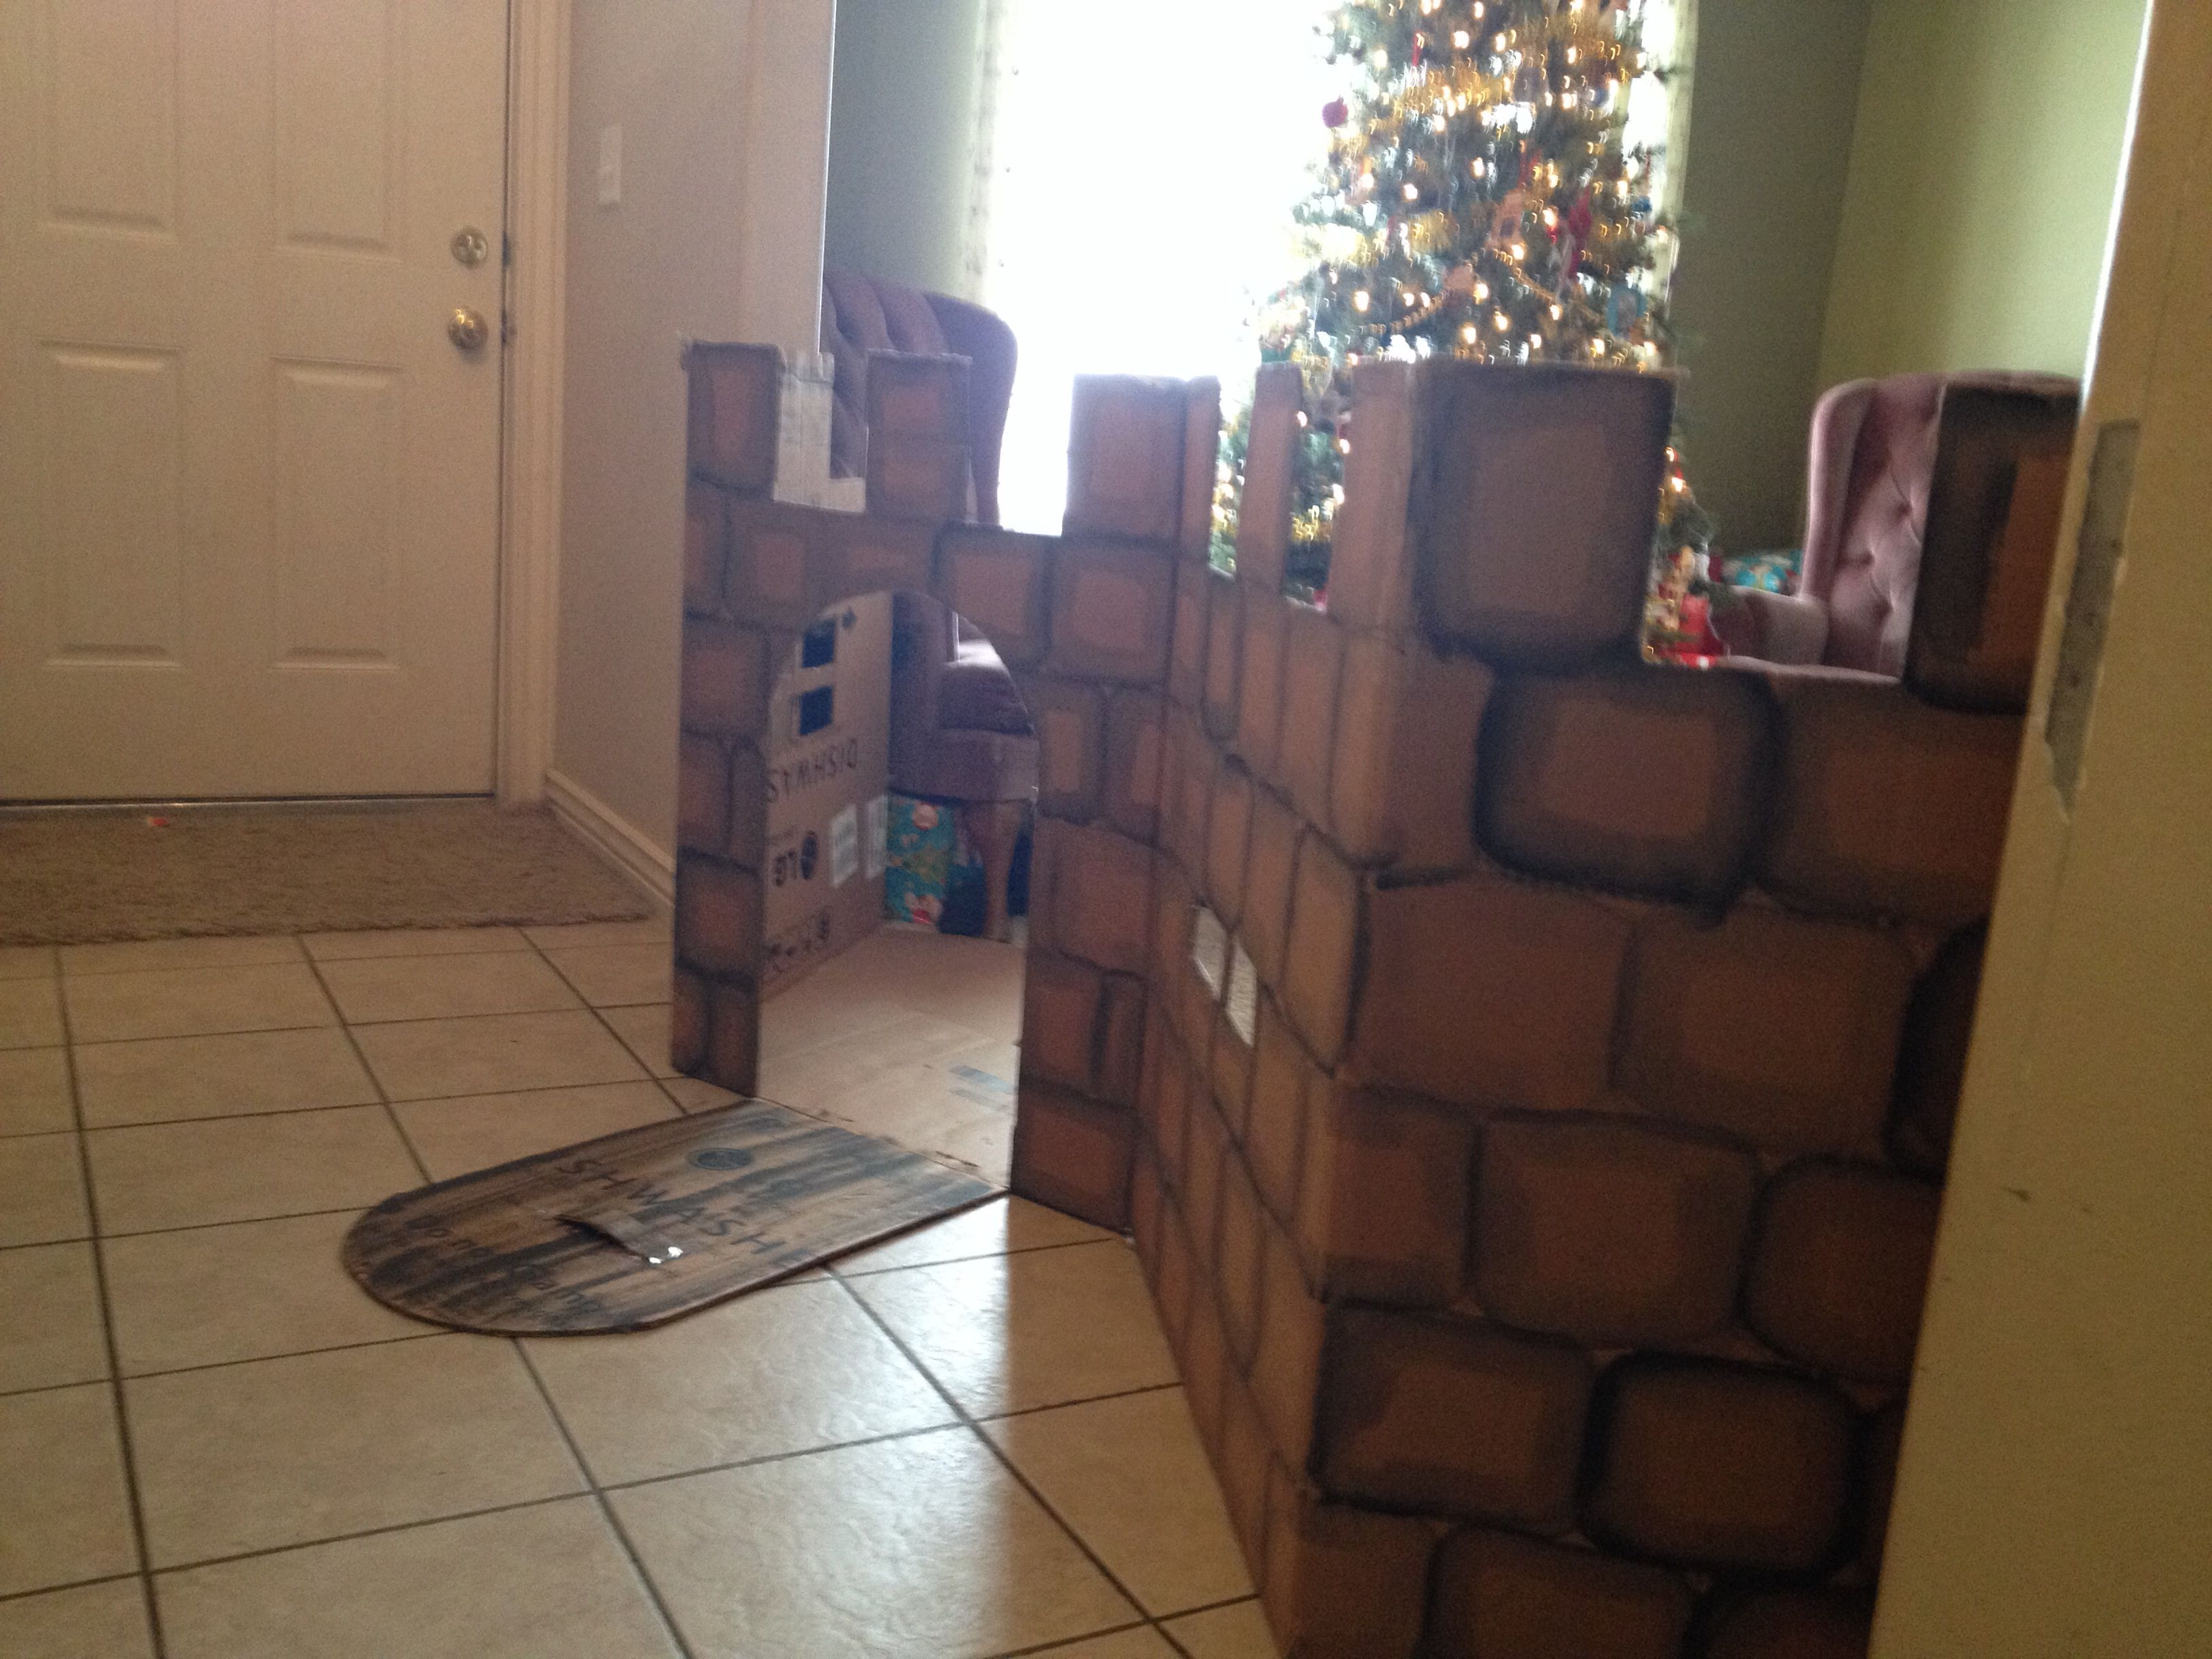 Christmas castle: surprise the kids on Christmas with a card board box decorated like a castle guarding the presents! Great for adventurous little boys!